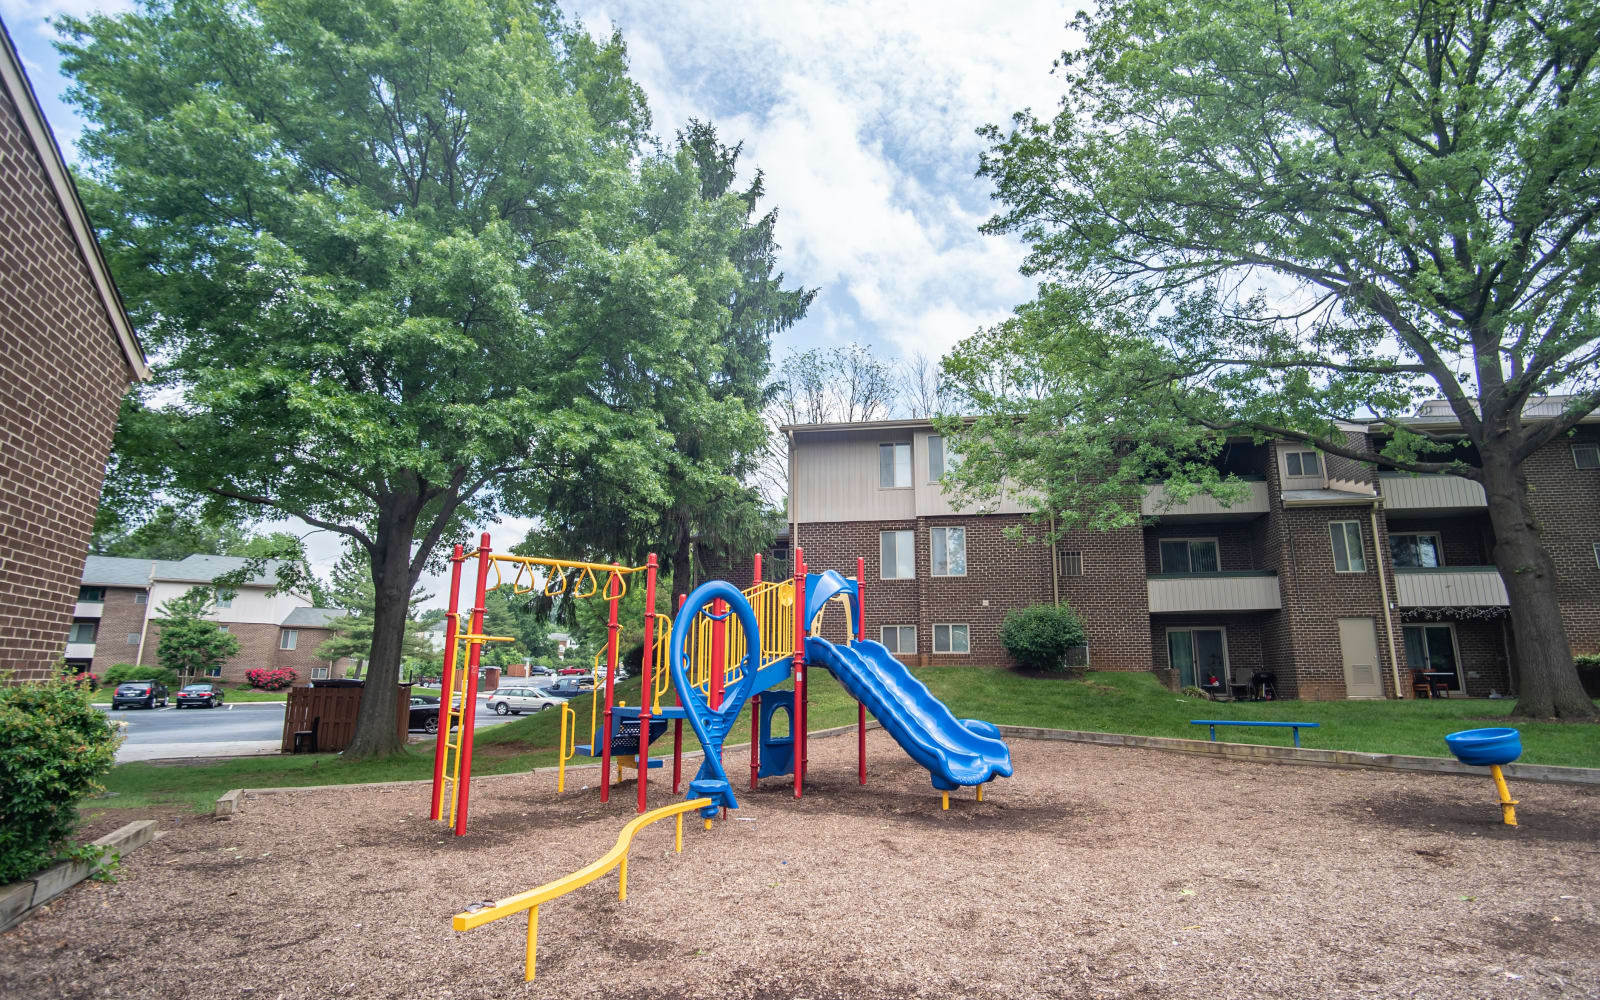 Children's playground at Hunt Club Apartments in Cockeysville, Maryland